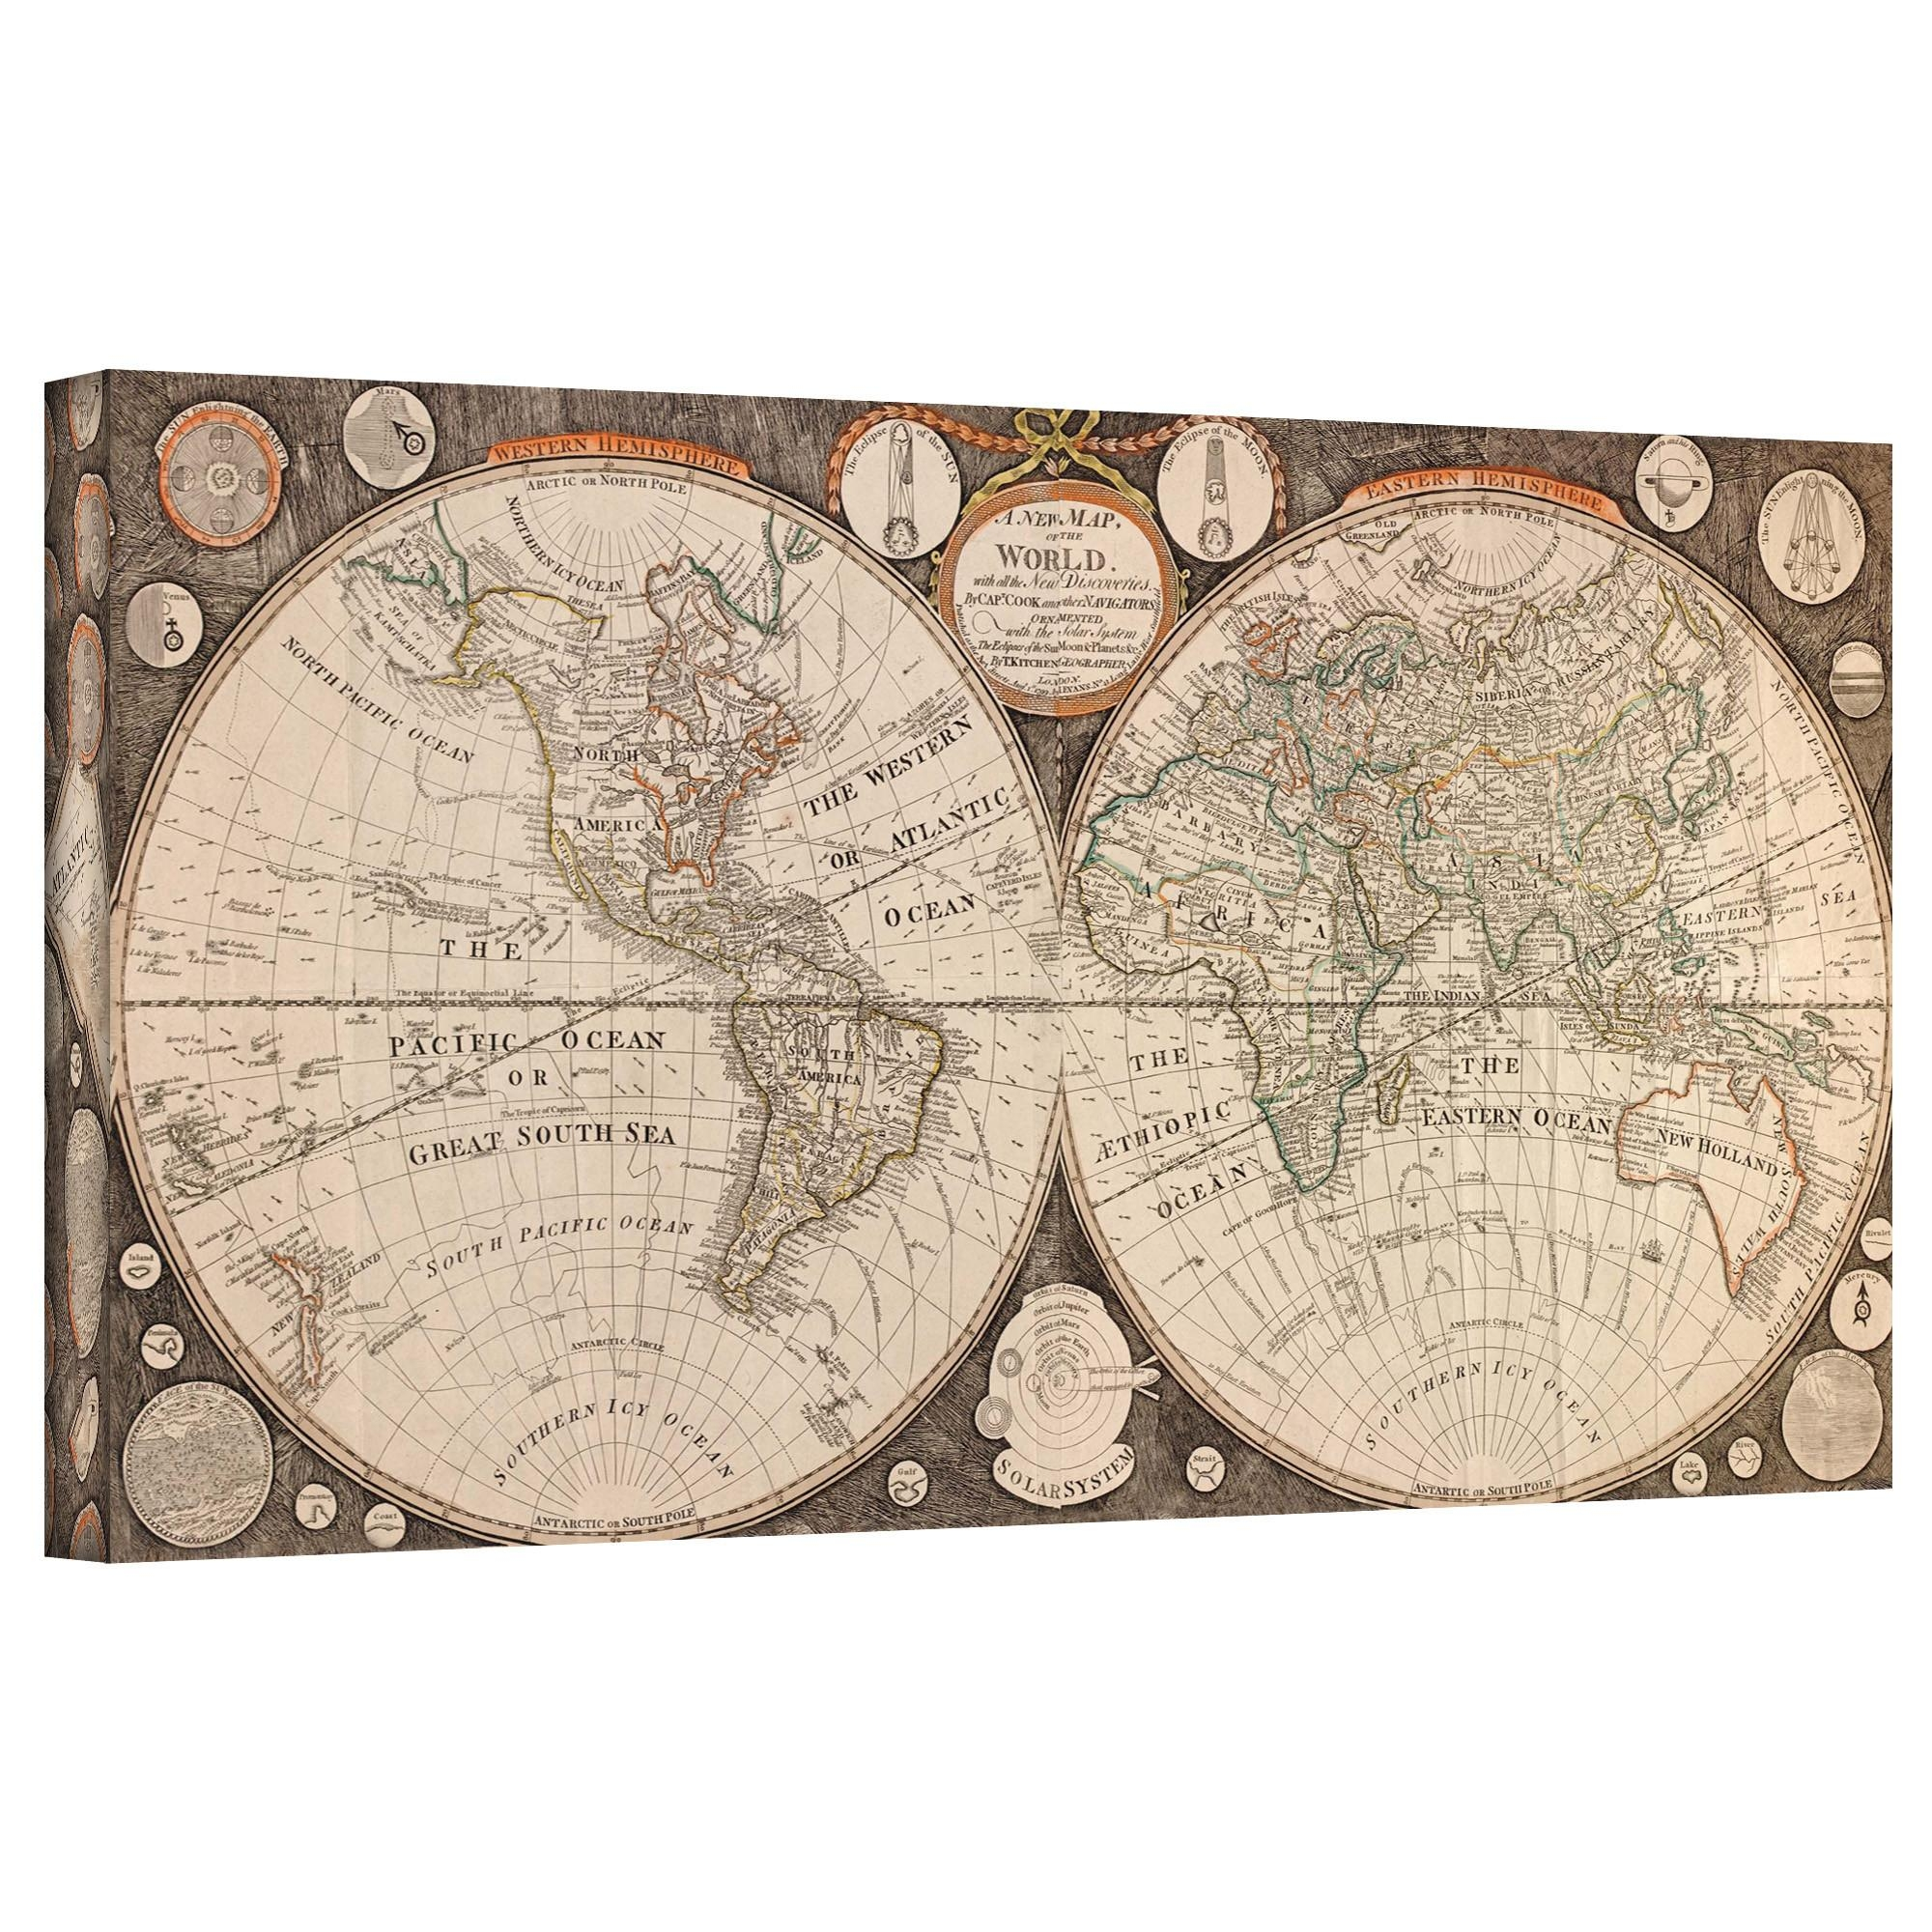 Wall Art Designs: Awesome Antique Map Wall Art Vintage World Map With Antique Map Wall Art (Image 20 of 20)